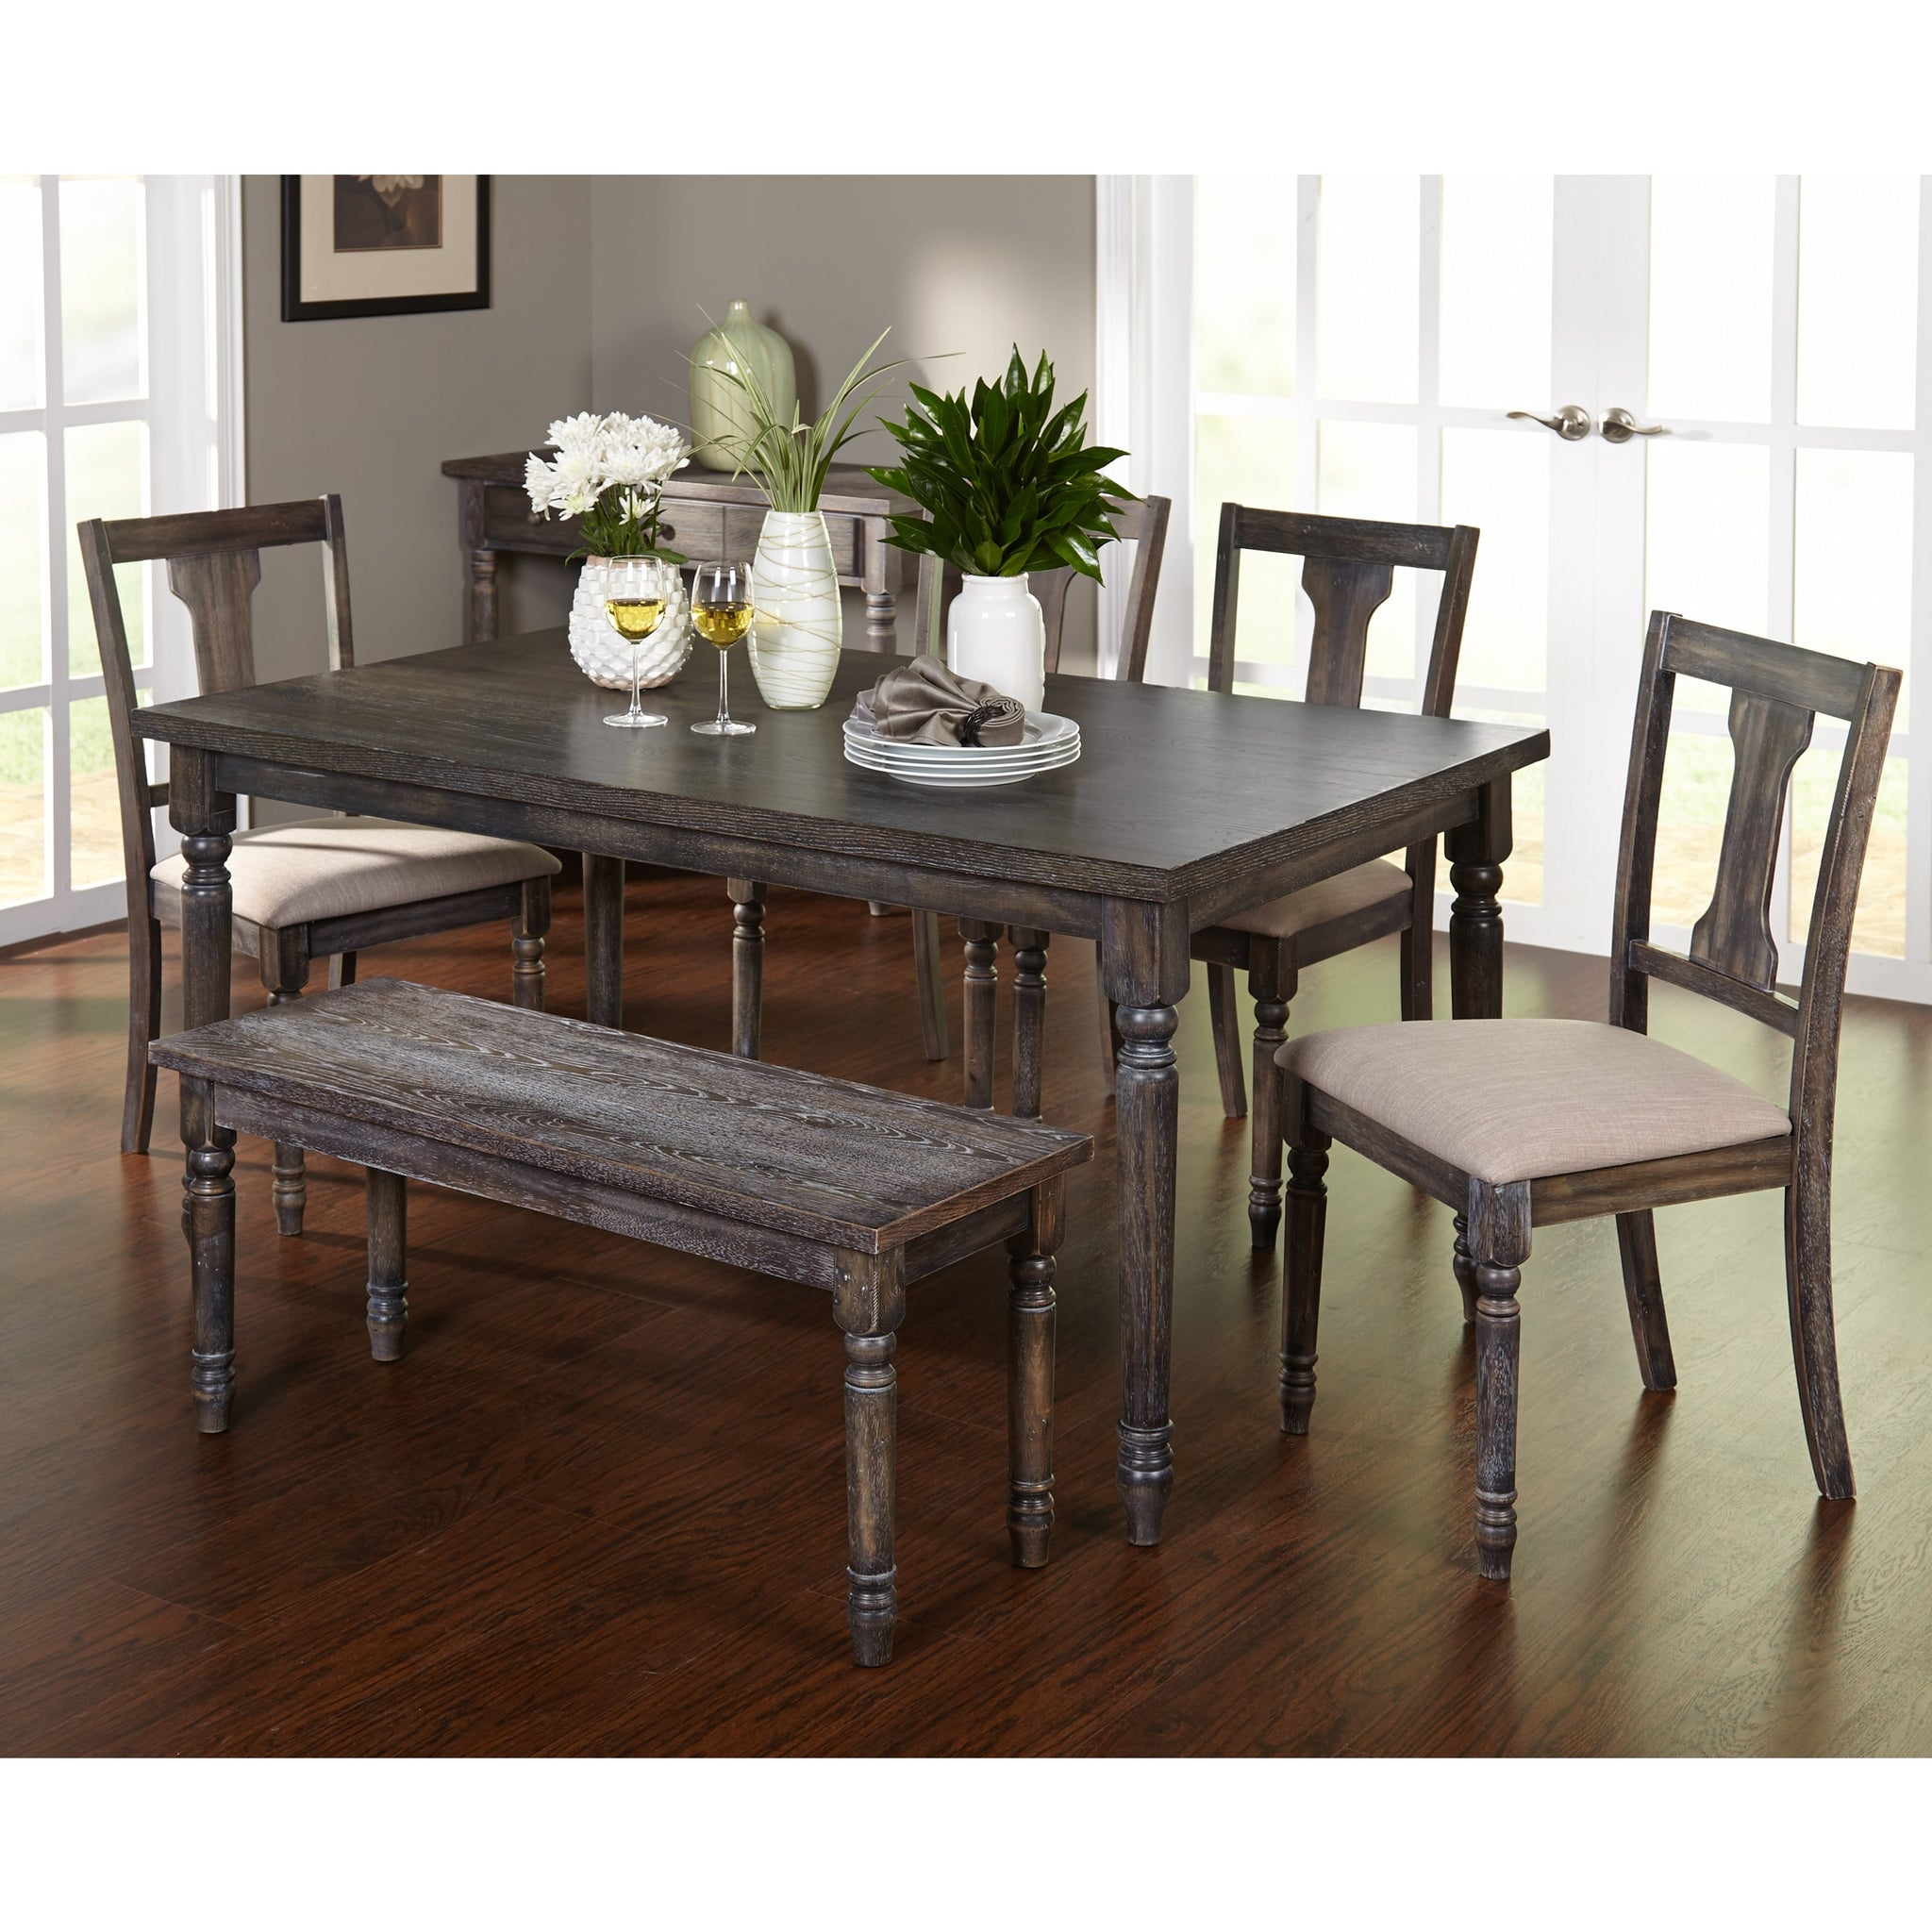 Six-Piece Burntwood Dining Set with Dining Bench